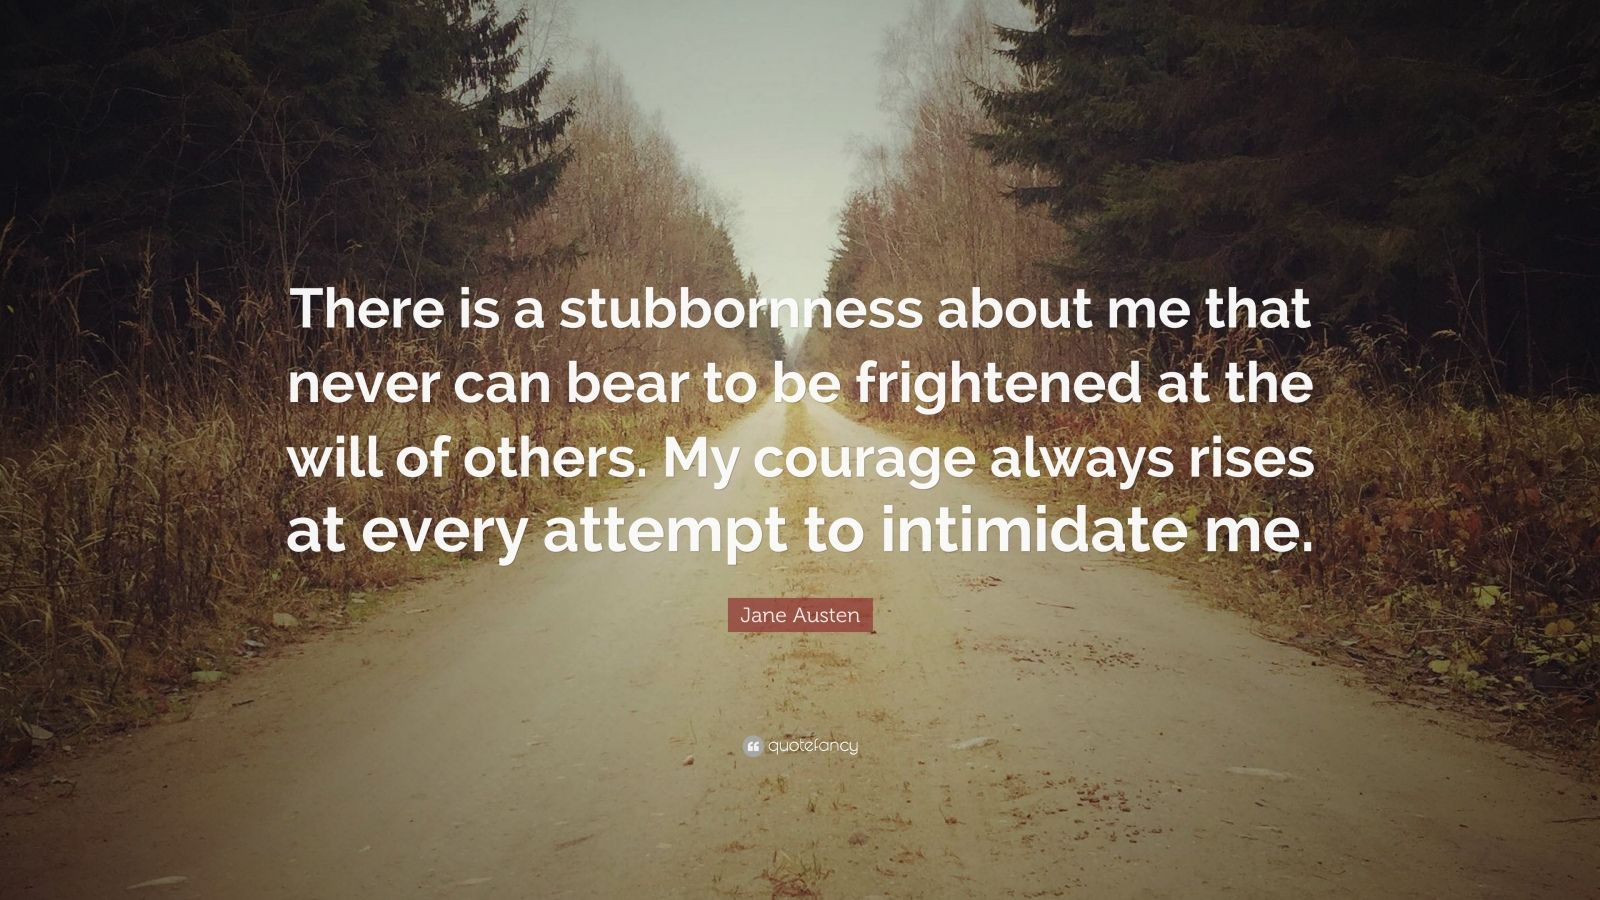 Jane Austen Quotes Wallpaper Jane Austen Quote There Is A Stubbornness About Me That